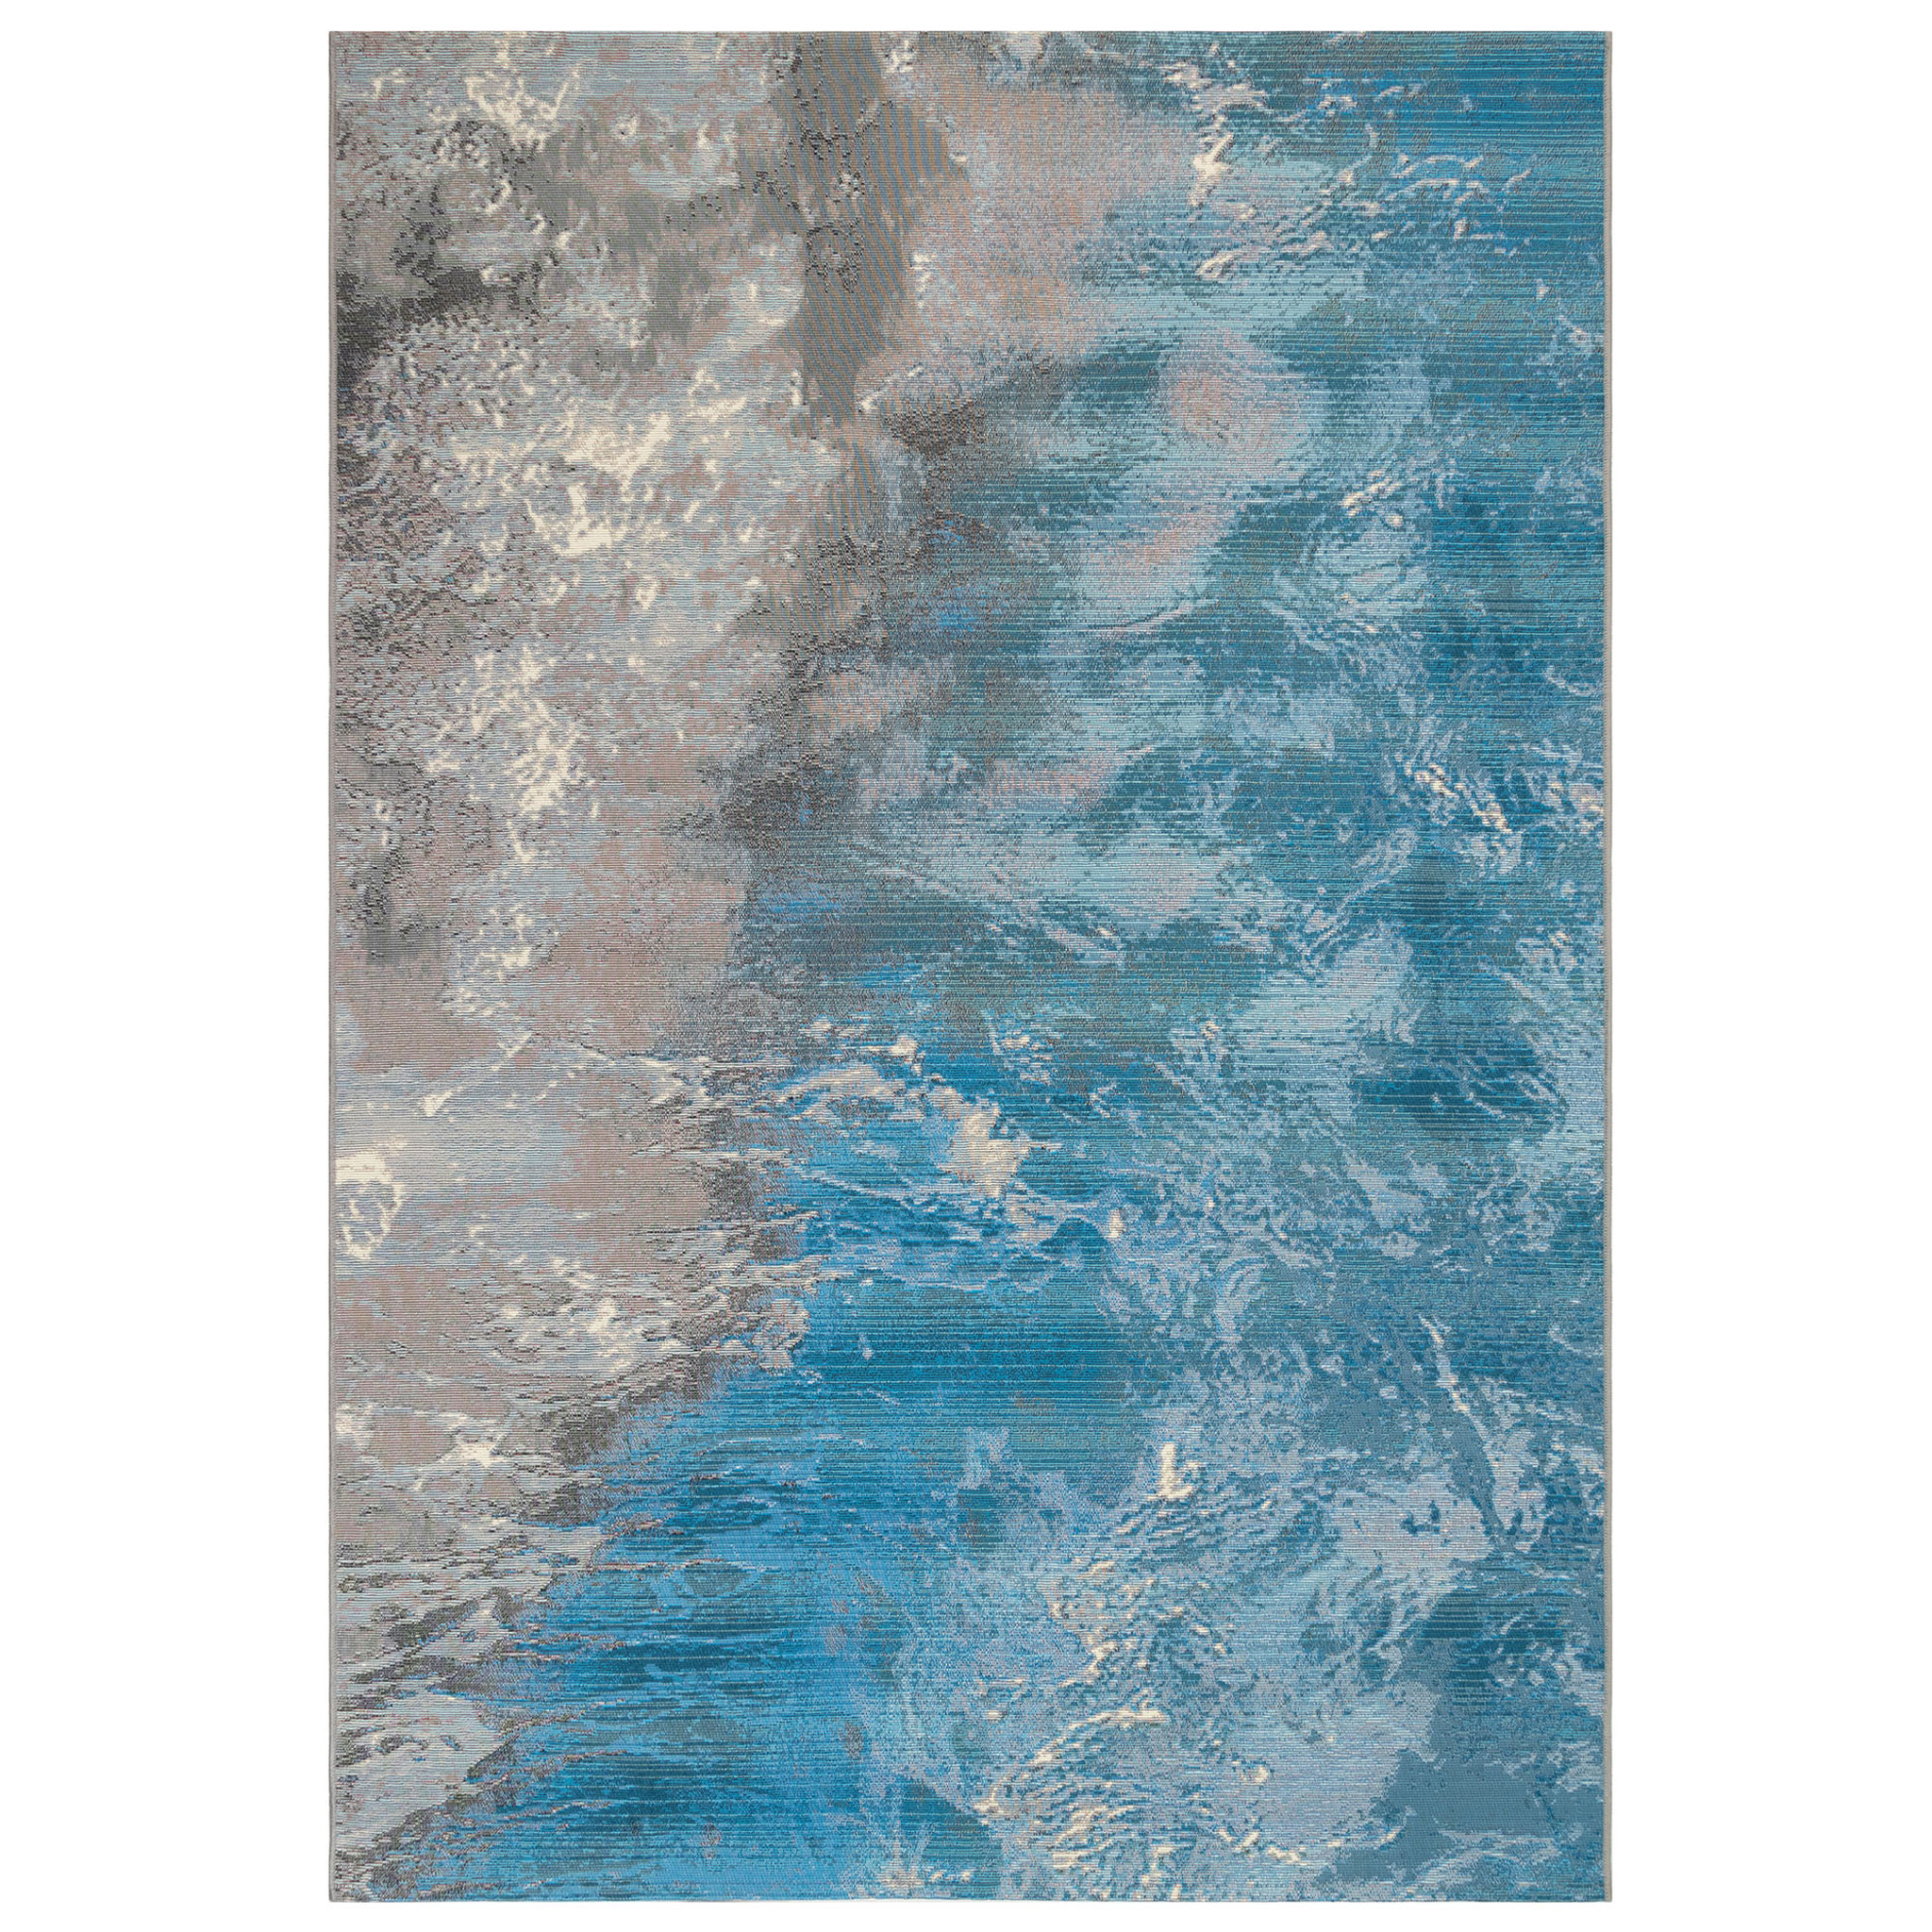 Image of: Surf Waves And Ocean Area Rug Caron S Beach House